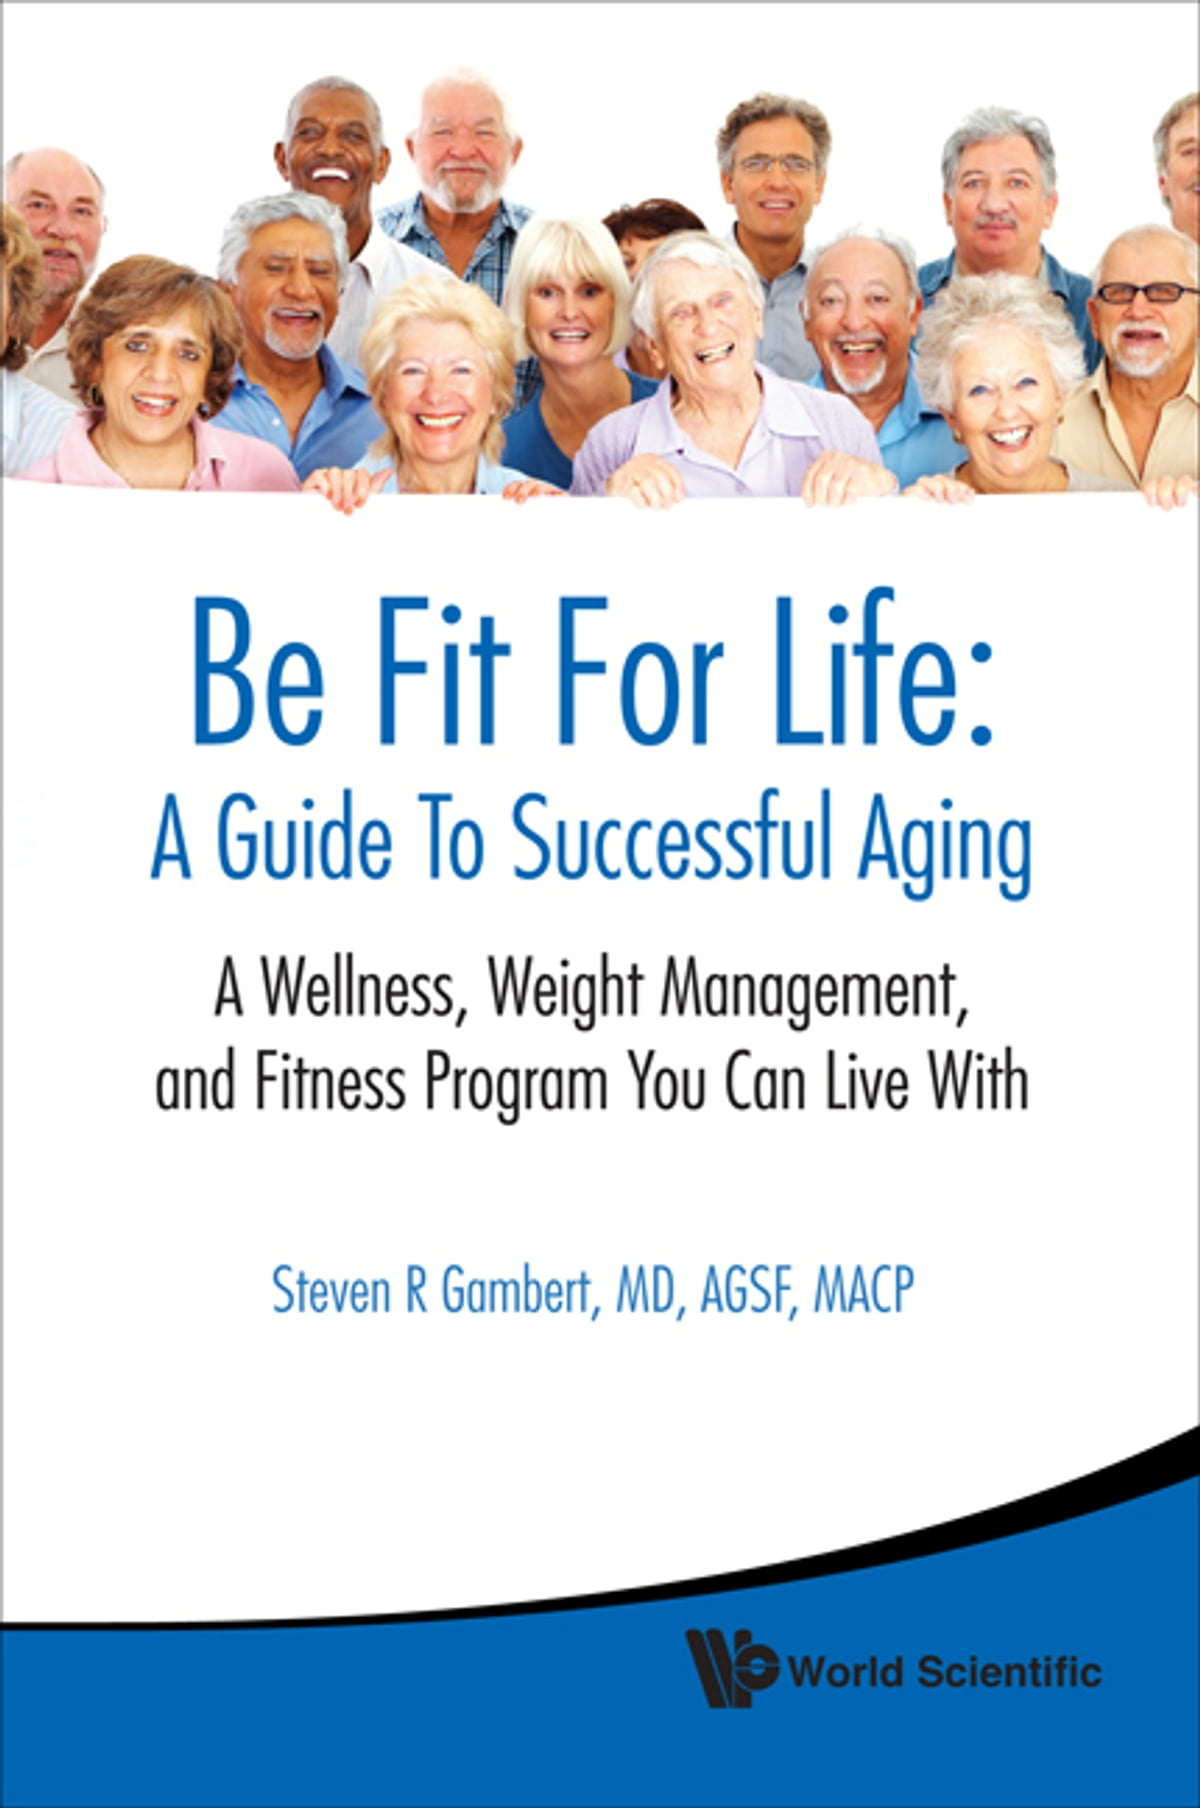 Fitness Lifestyle Wangen Be Fit For Life A Guide To Successful Aging Ebooks By Steven R Gambert Rakuten Kobo